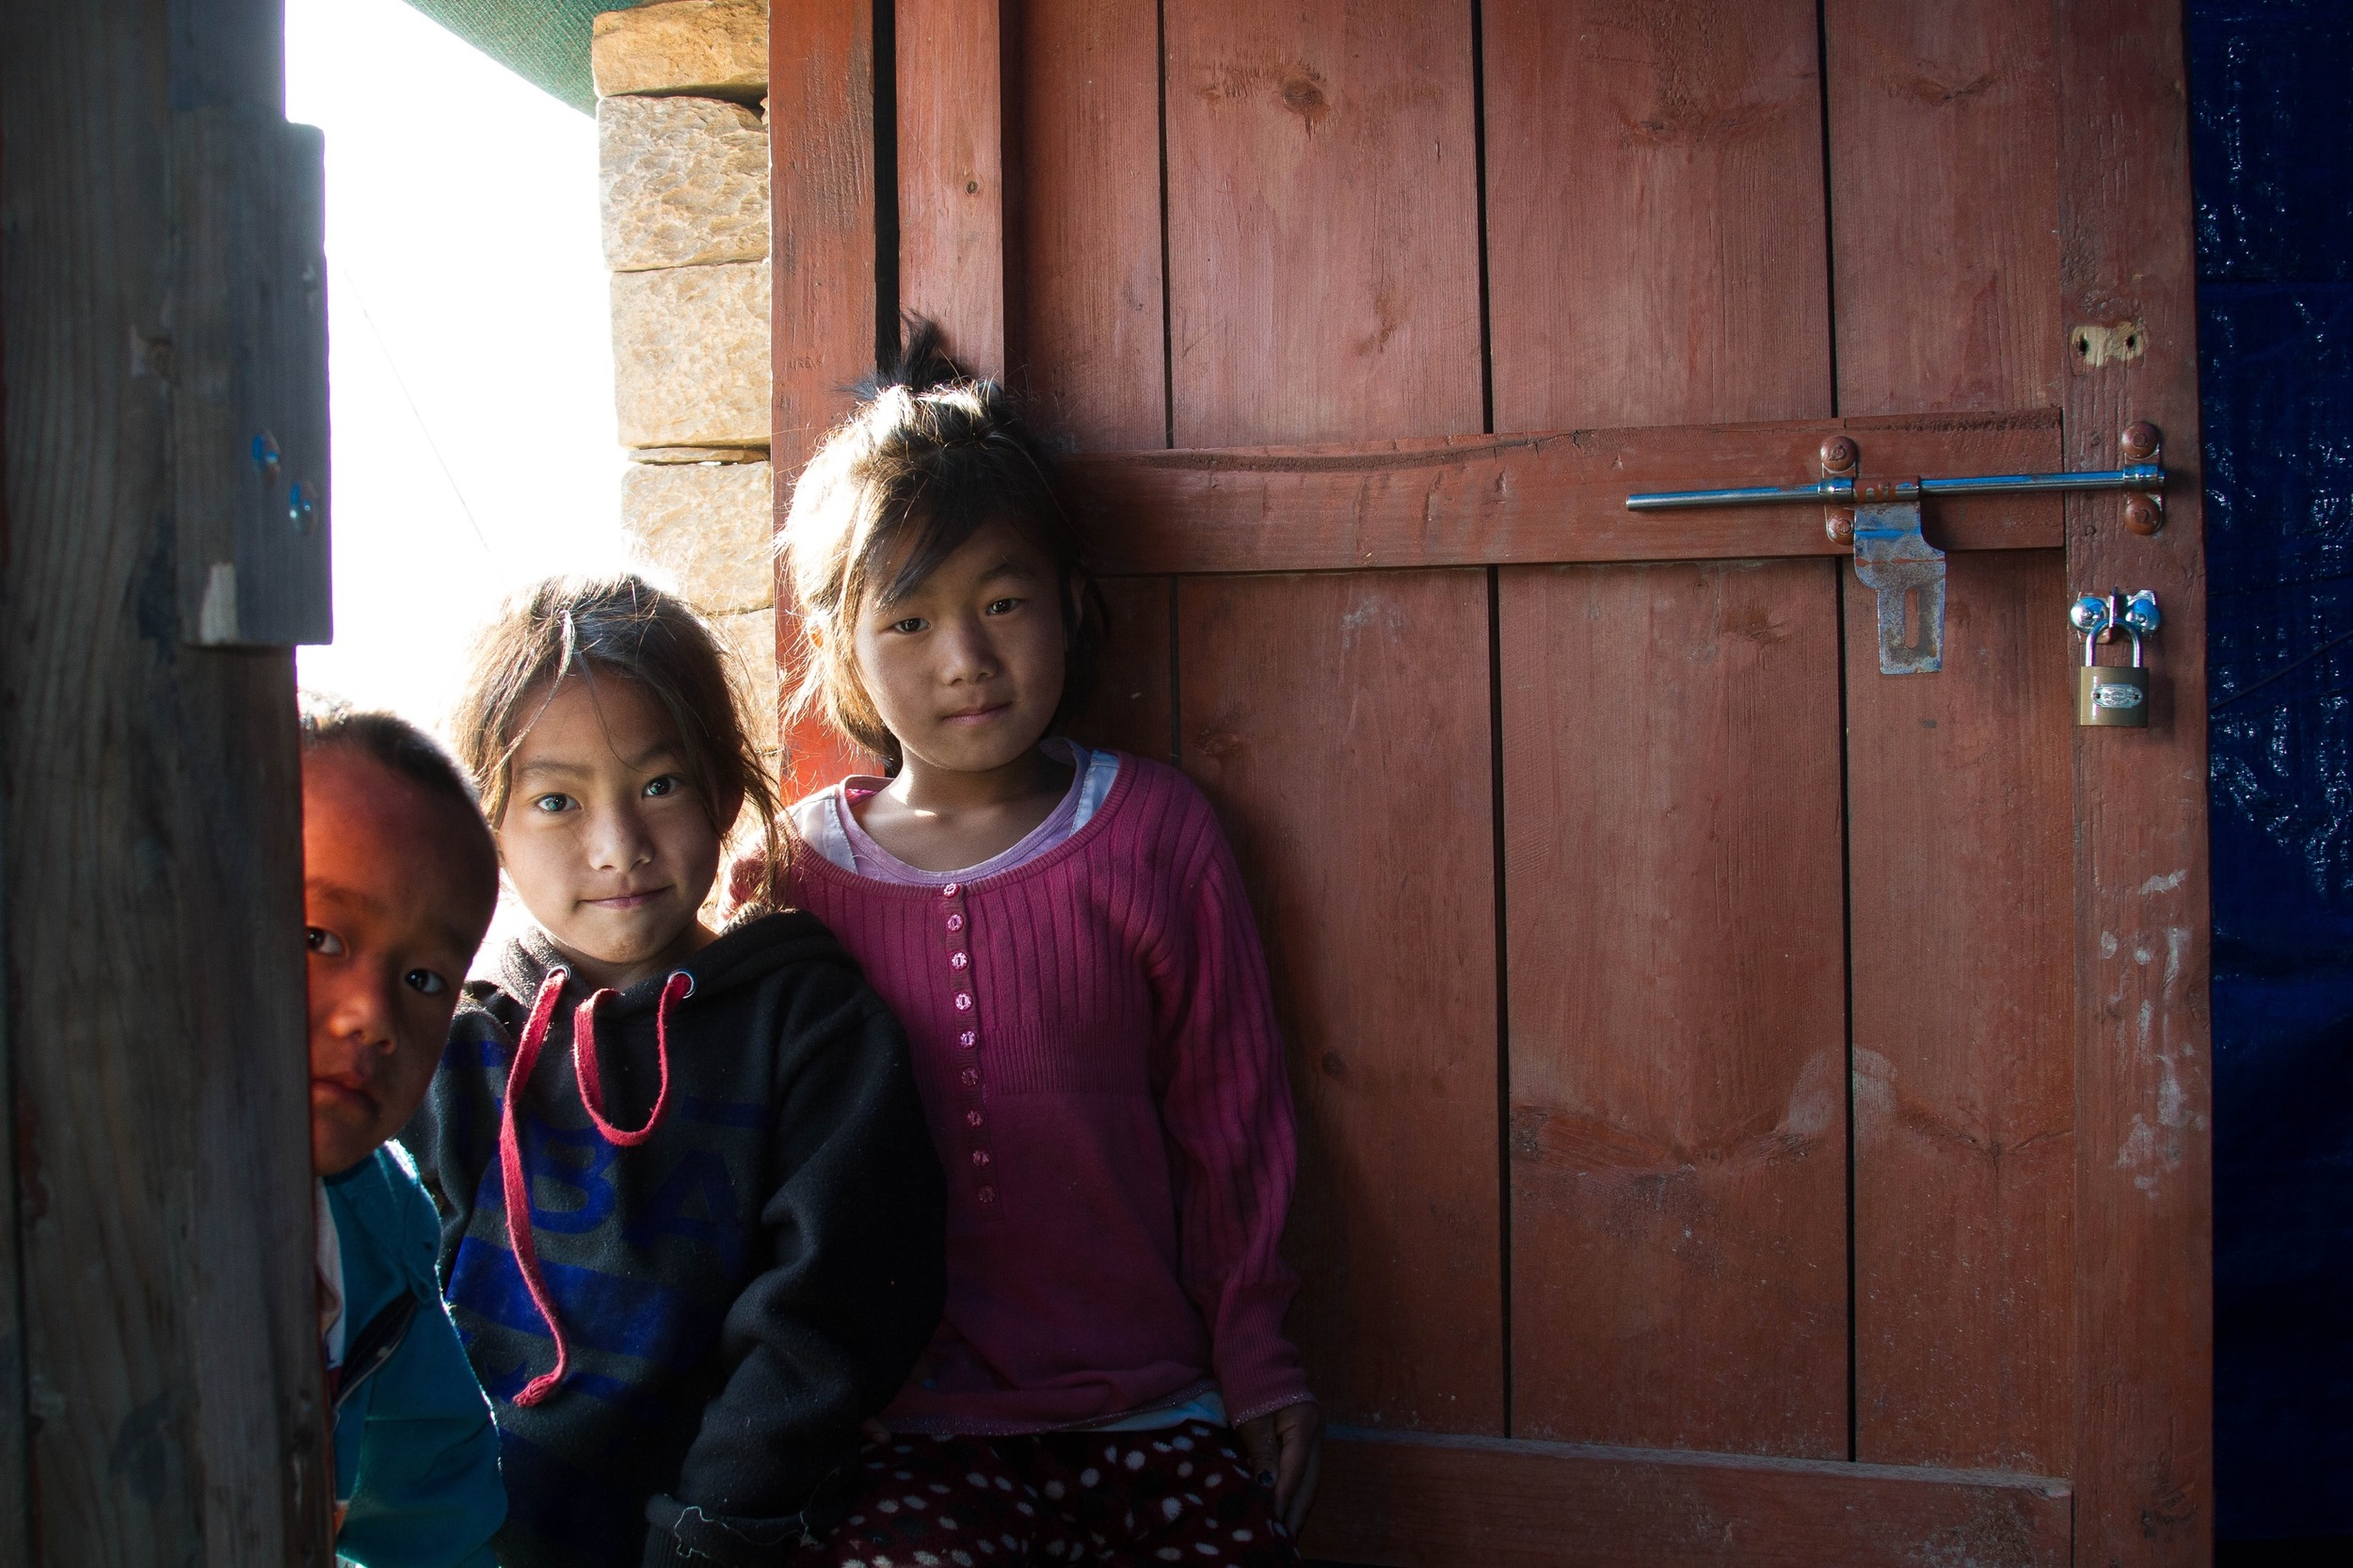 Children in Dhading have been able to return to school, as UMN has built 14 temporary learning centers throughout Dhading. UMN has begun to upgrade these temporary centers into semi-permanant ones, and also plans to build 45 permanent learning centers - Photo by Denise Poon.